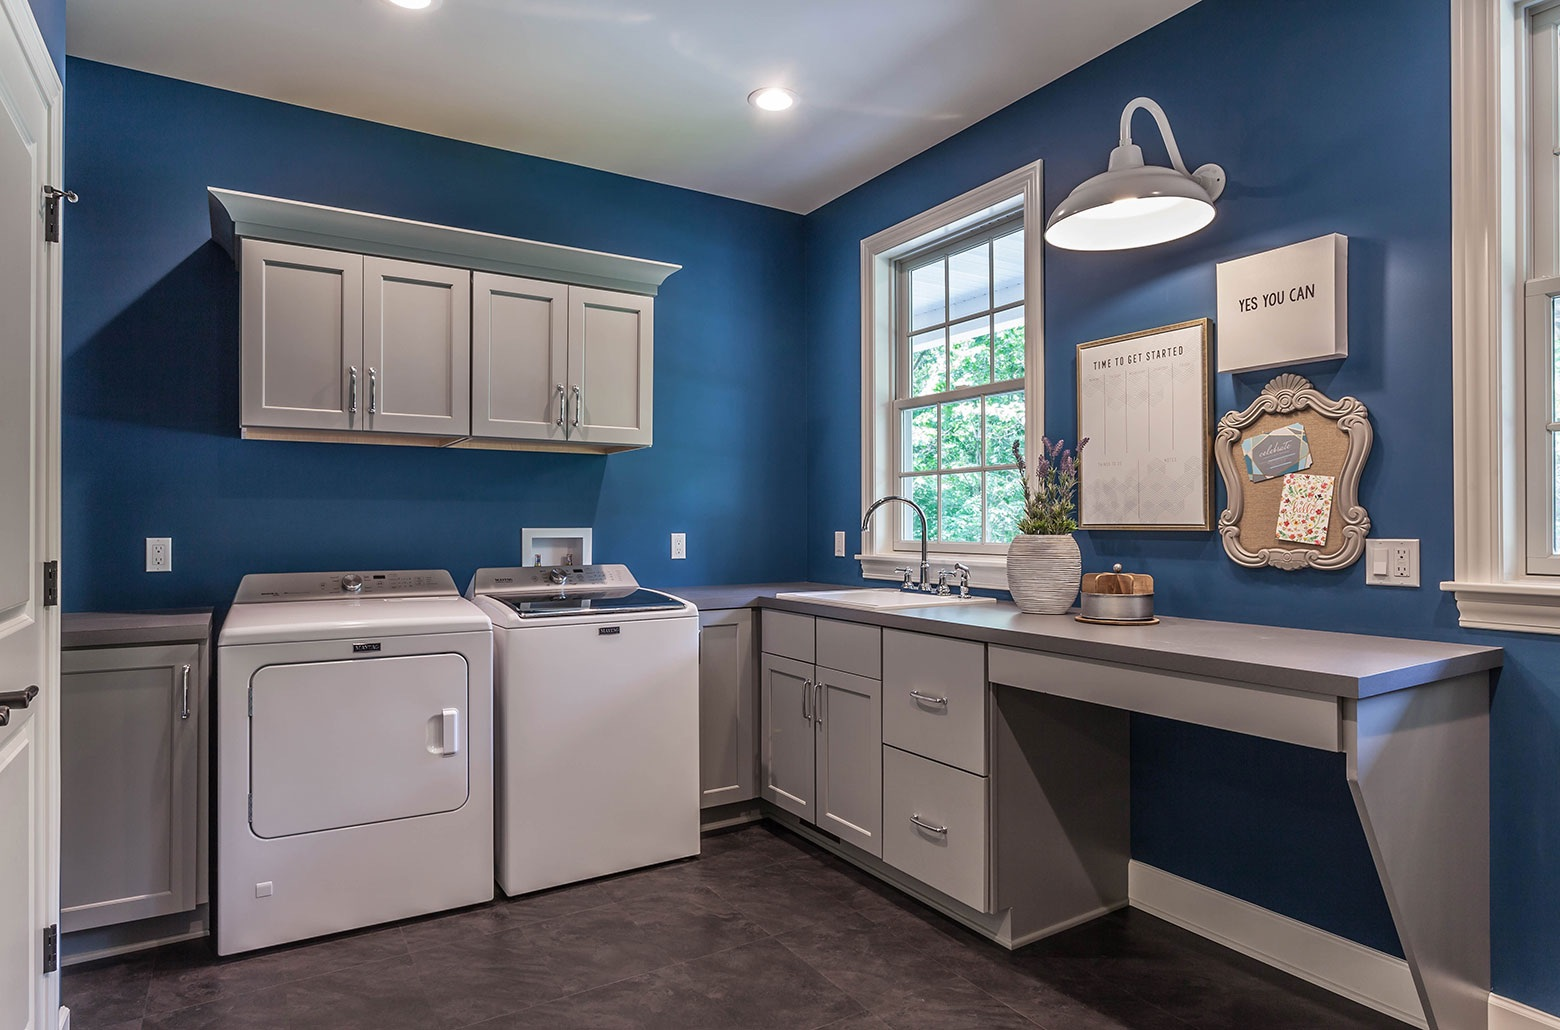 ADA accessible kitchen